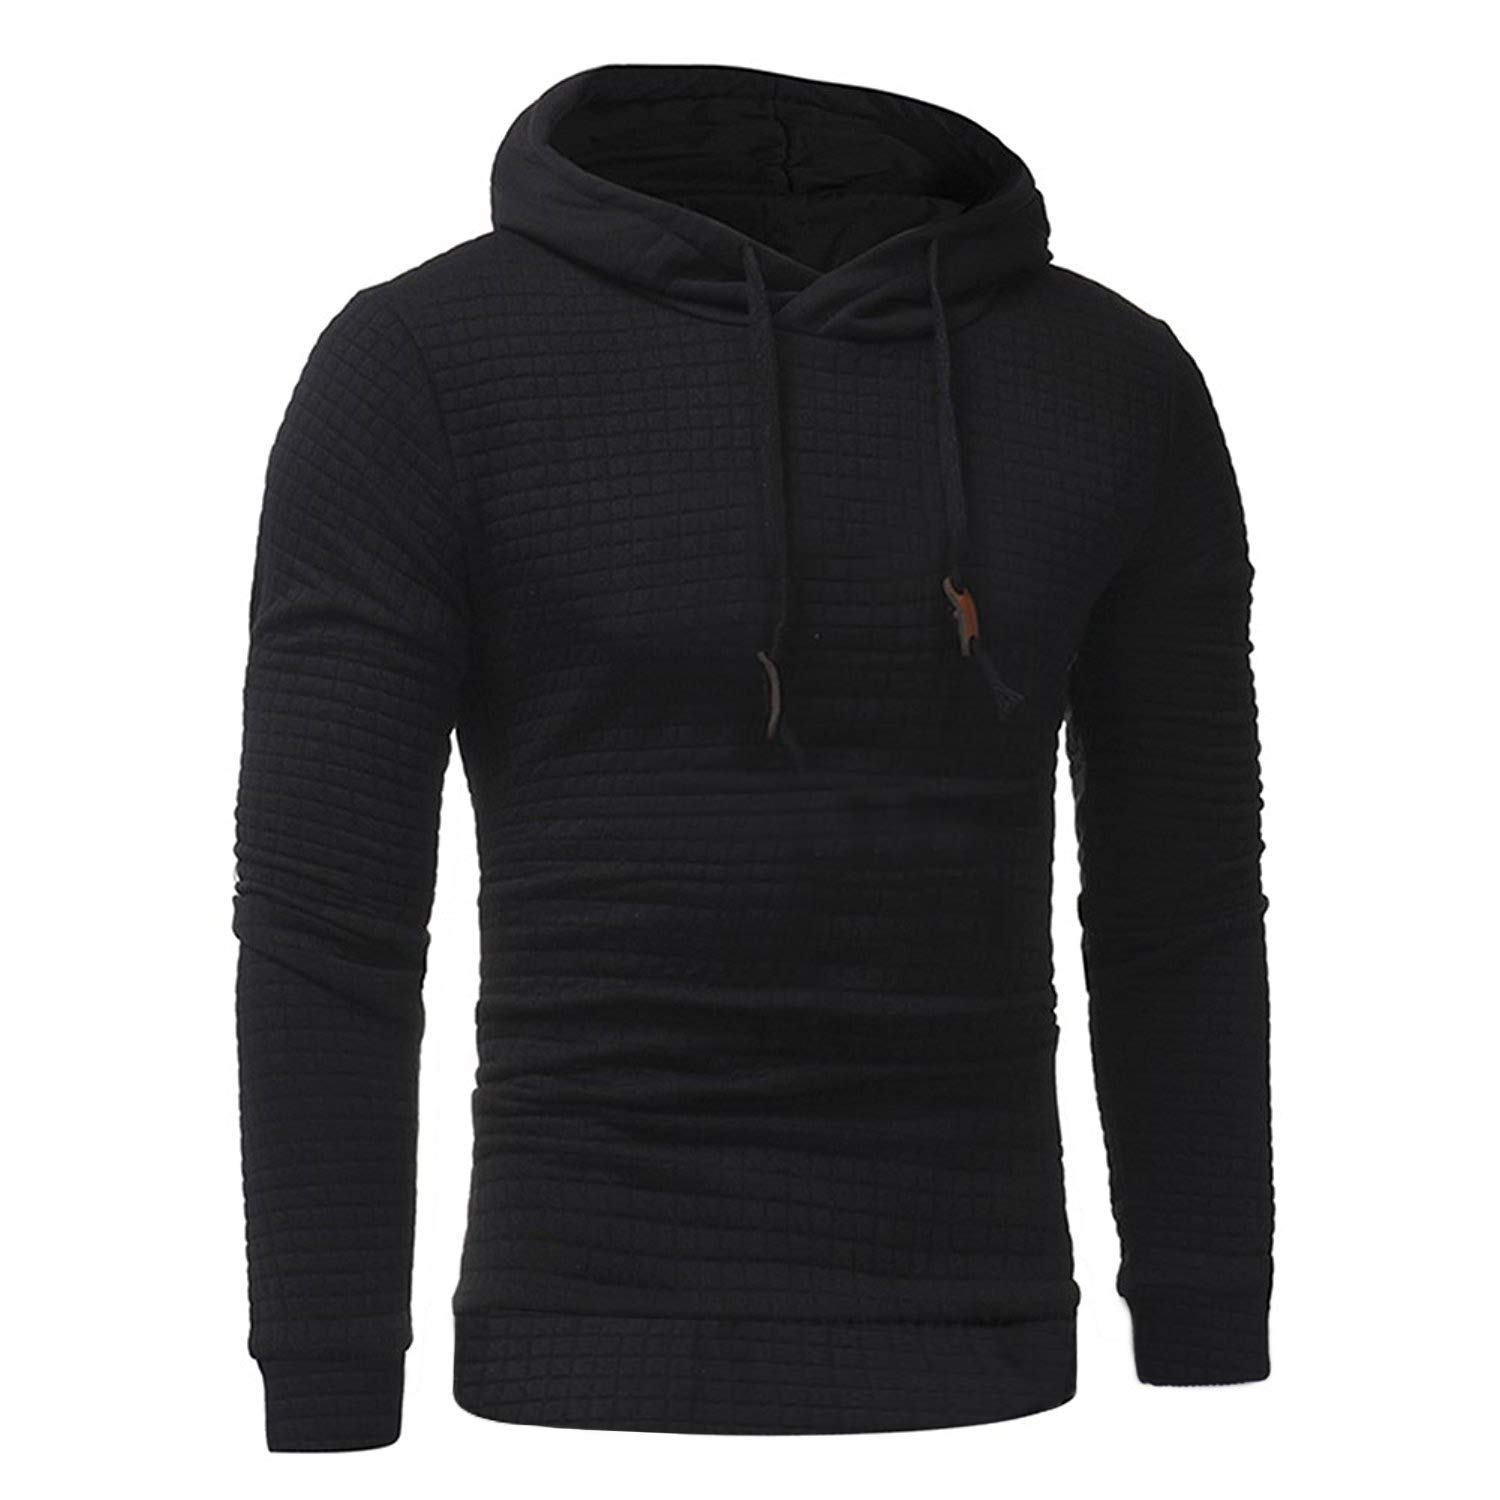 Chenghe Mens Casual Solid Color Hooded Sweatshirts Long Sleeves Pullover Hoodies